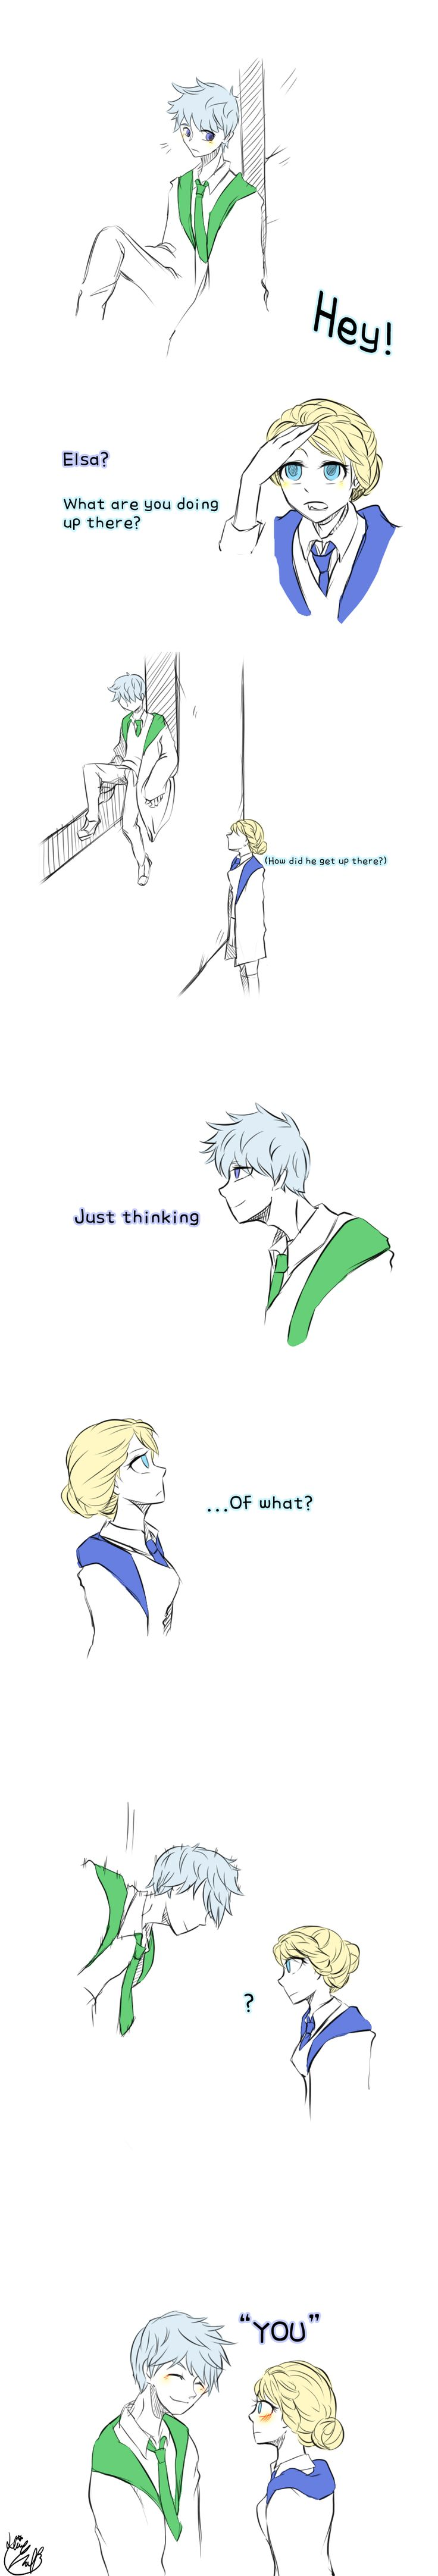 Thinking by Lime-Hael on deviantART | Frozen's Elsa and Rise of the Guardians' Jack Frost | J.K. Rowling's Harry Potter